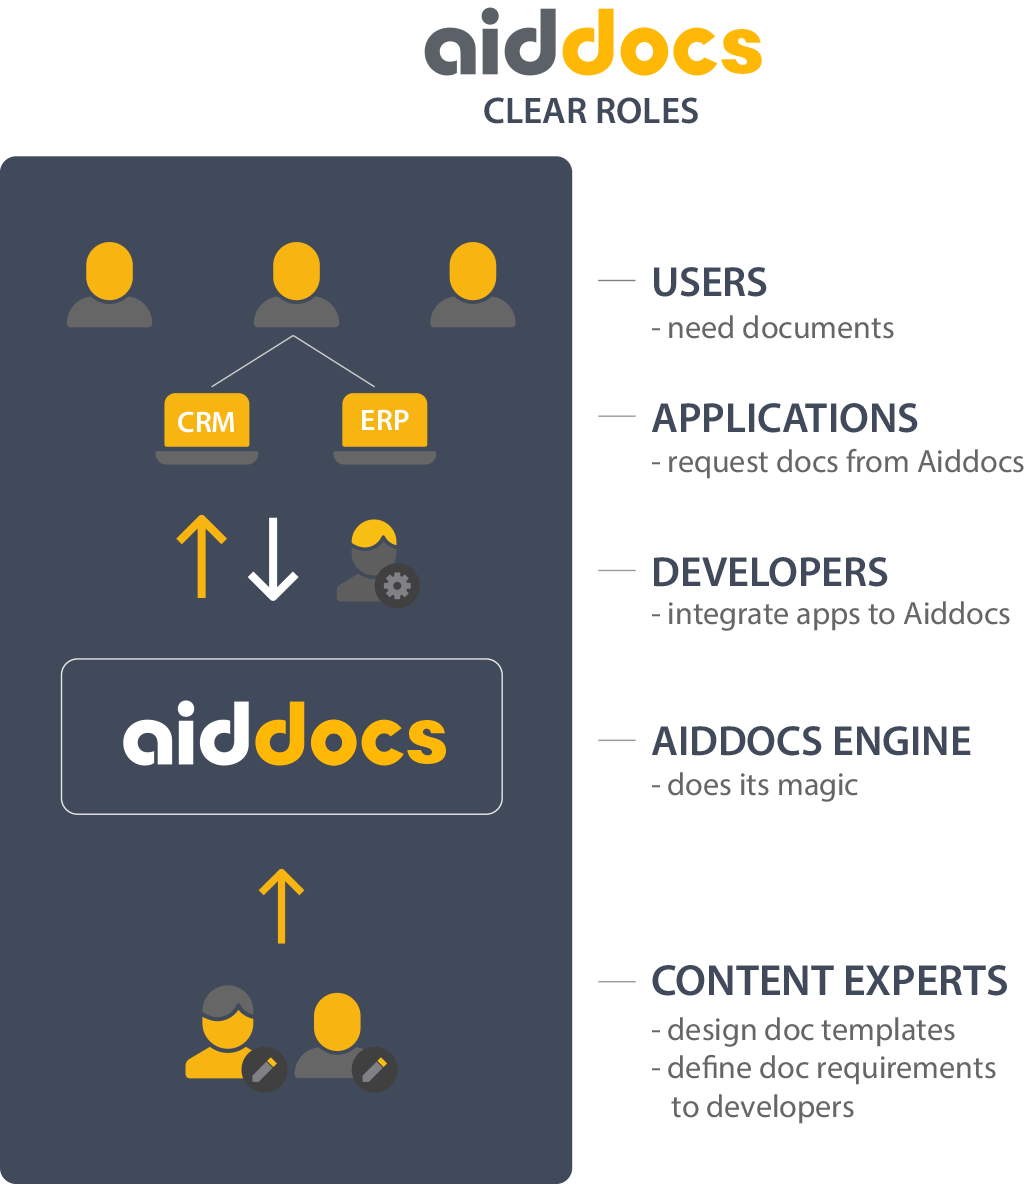 Aiddocs separates the roles of software developers and content experts.